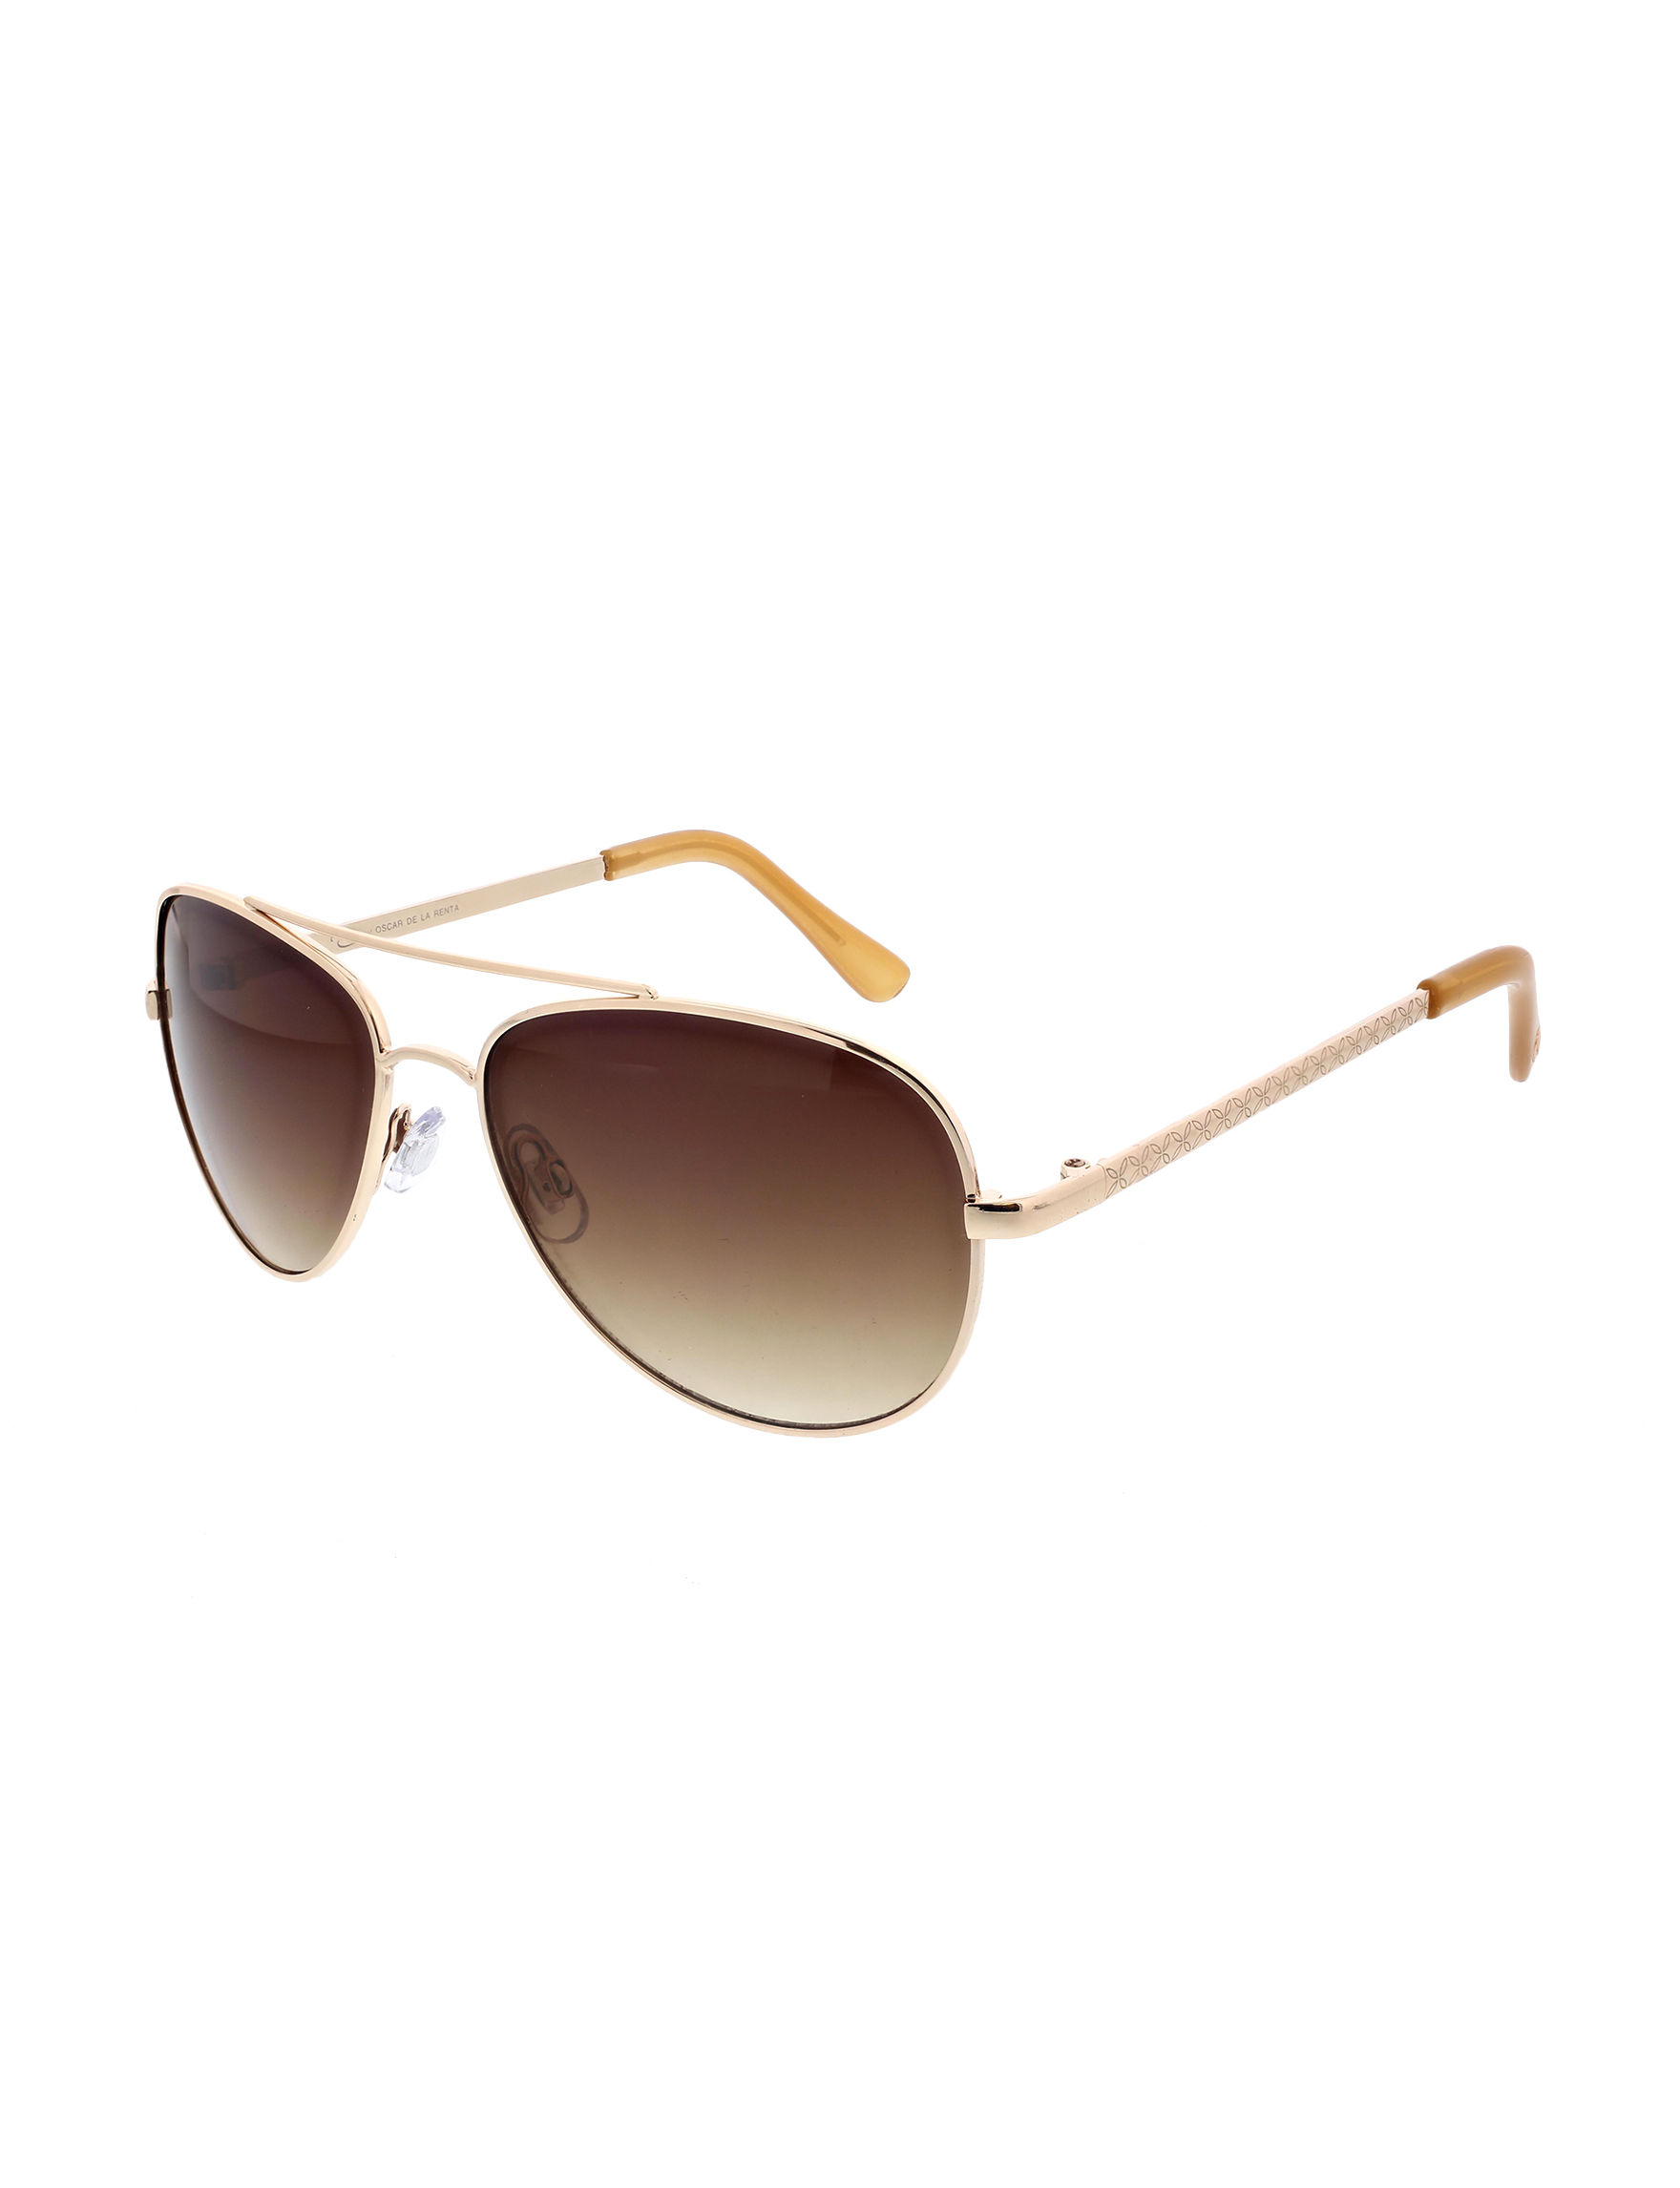 5bf397207585b O by Oscar Women s Floral Etched Temple Aviator Sunglasses